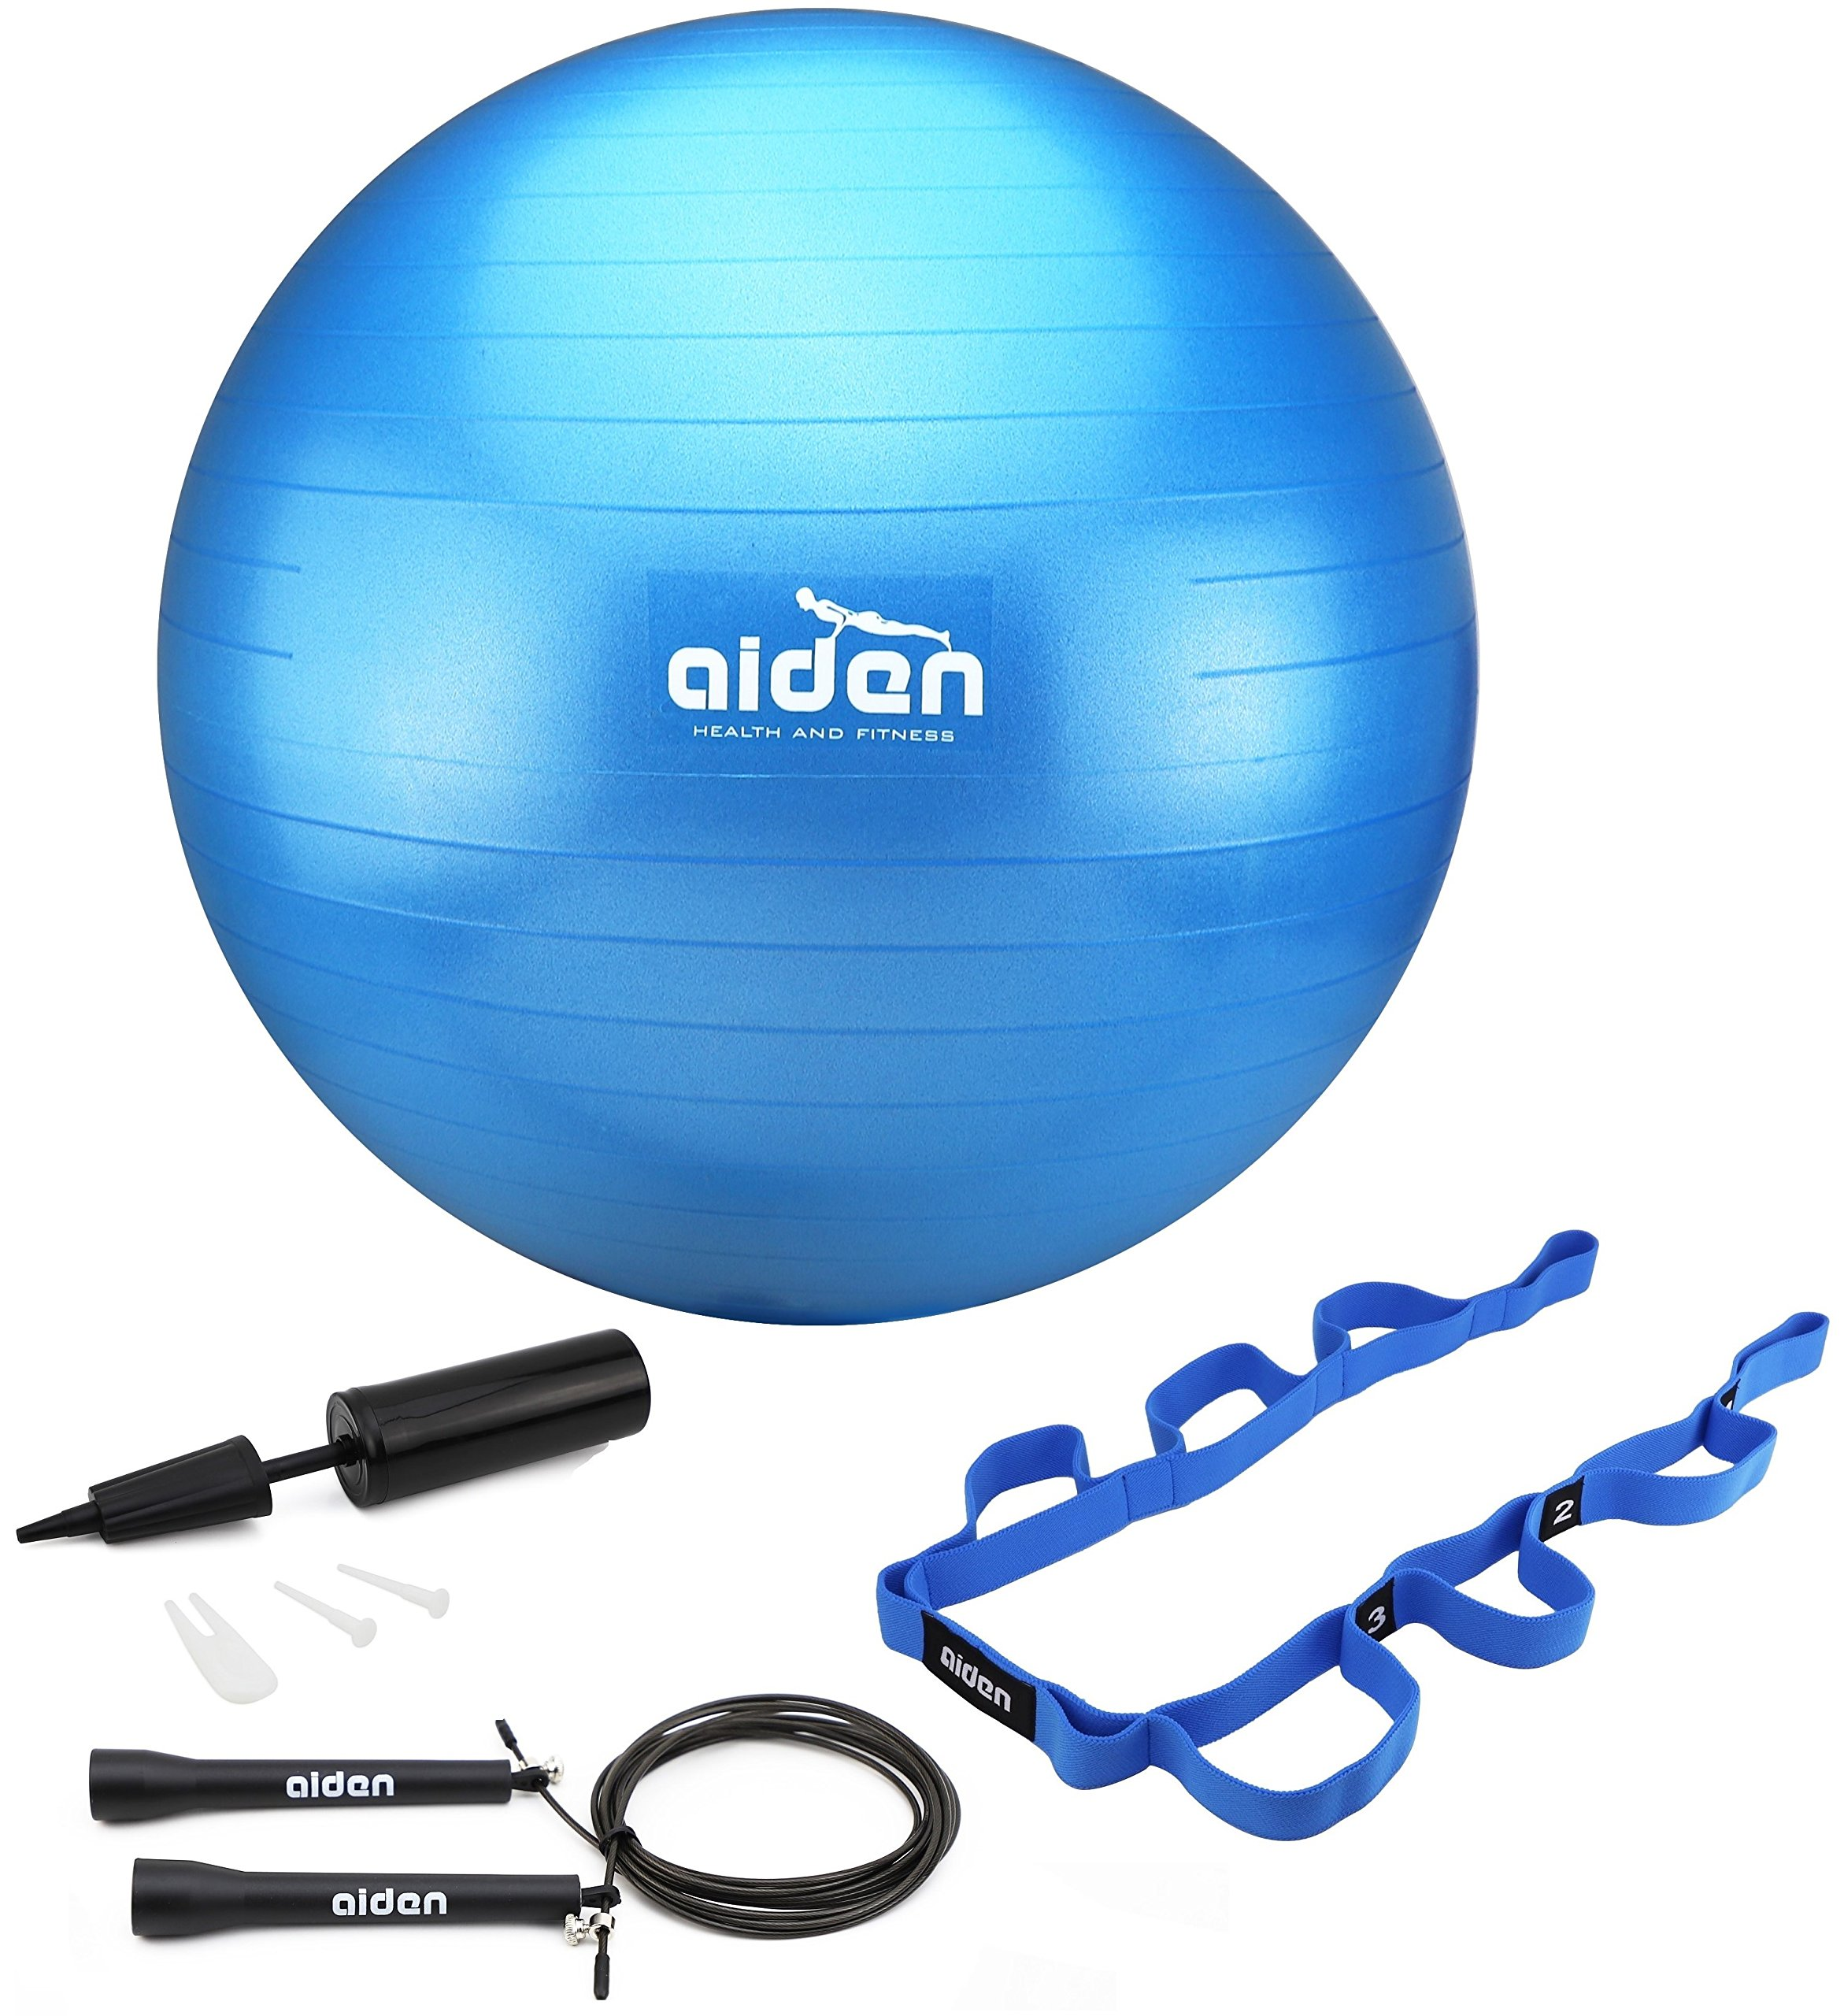 OLIVIA & AIDEN Exercise Ball Set- Includes Yoga Ball, Pump, Exercise Jump Rope (Speed Rope) and Stretch Band - Get Trim, Fit and Healthy With This Home Workout Set